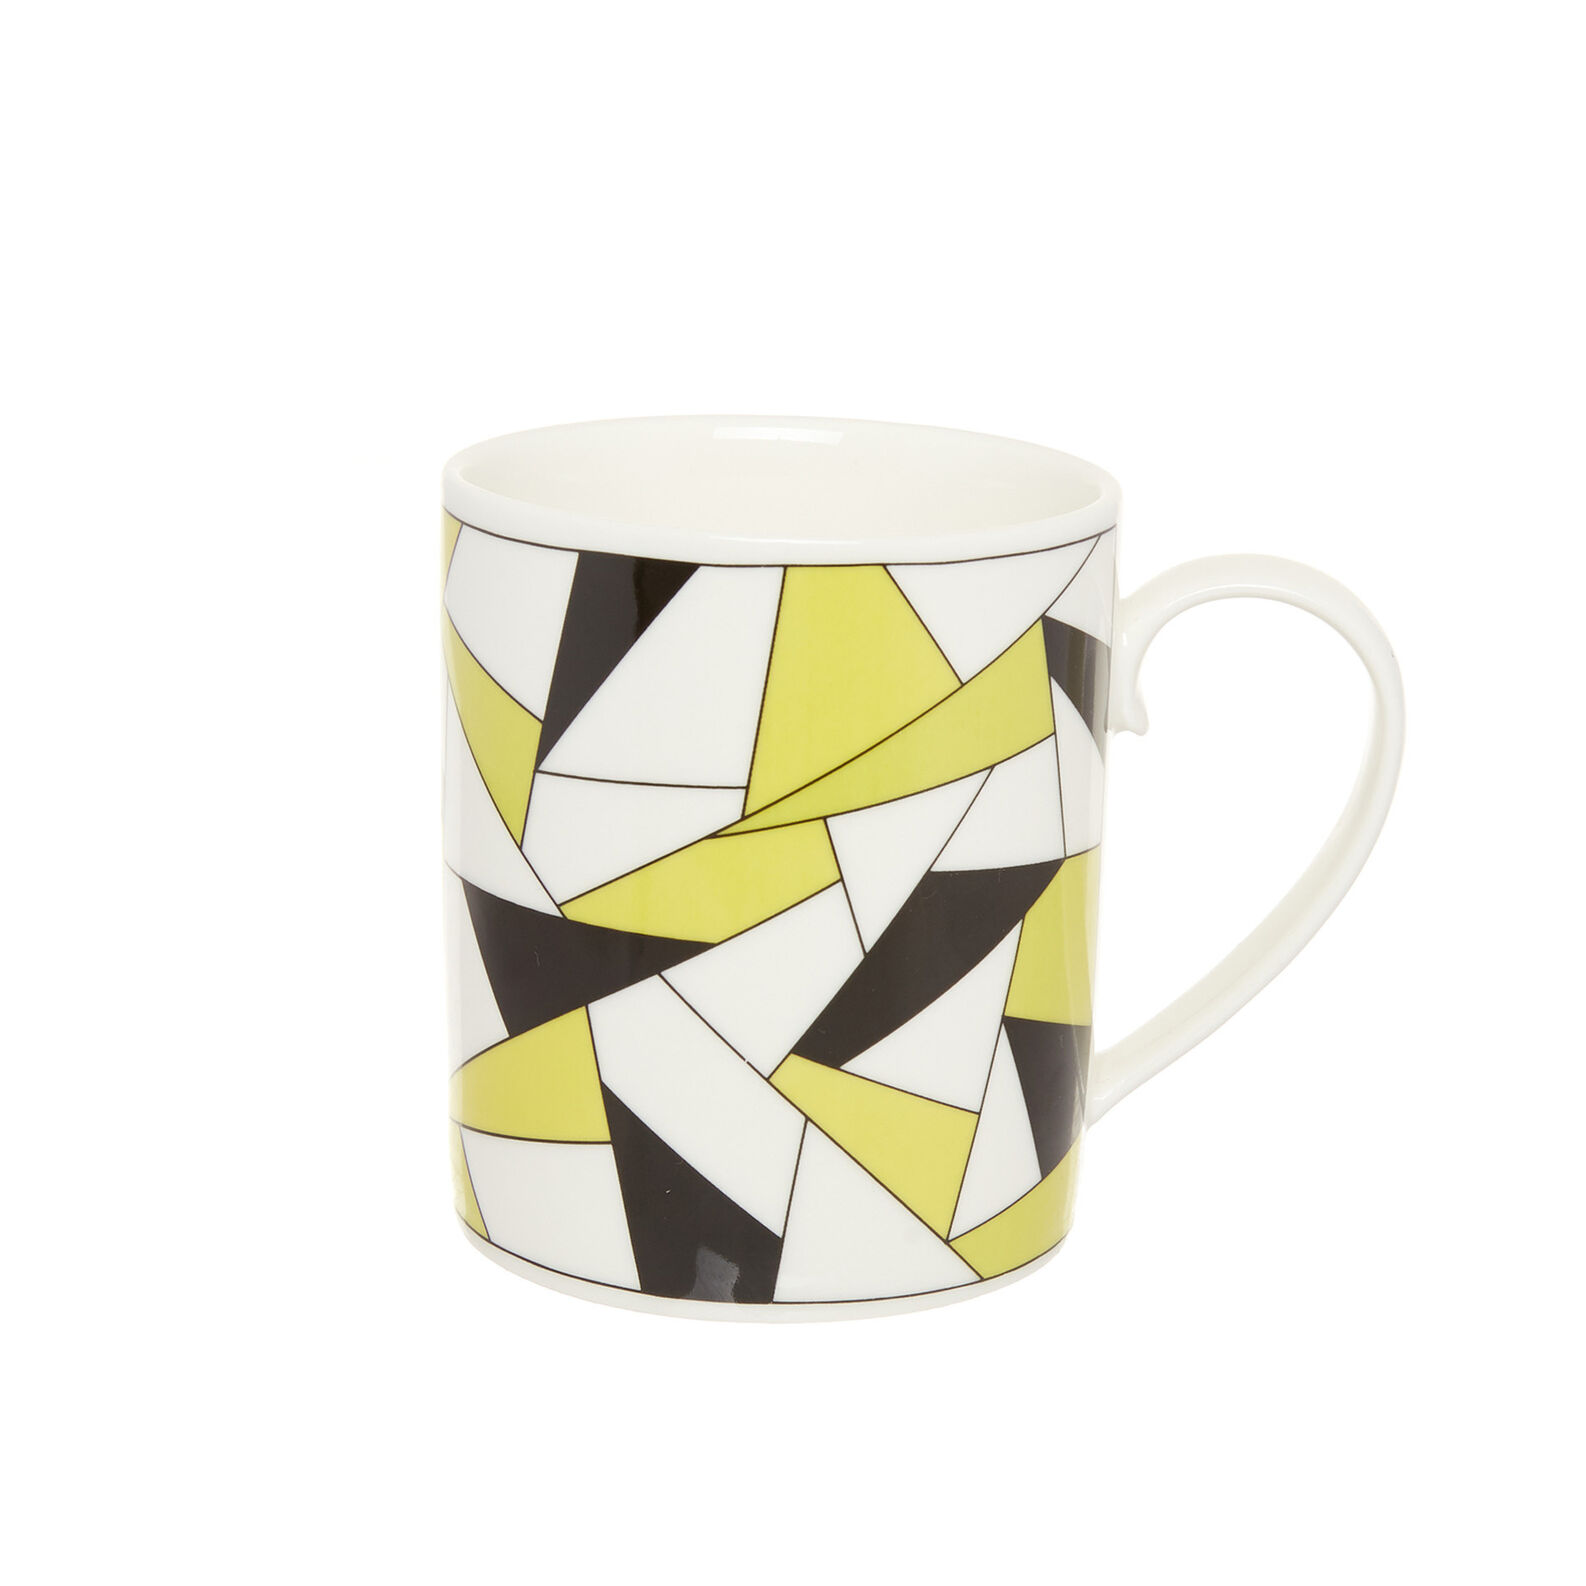 Porcelain mug with geometric decoration